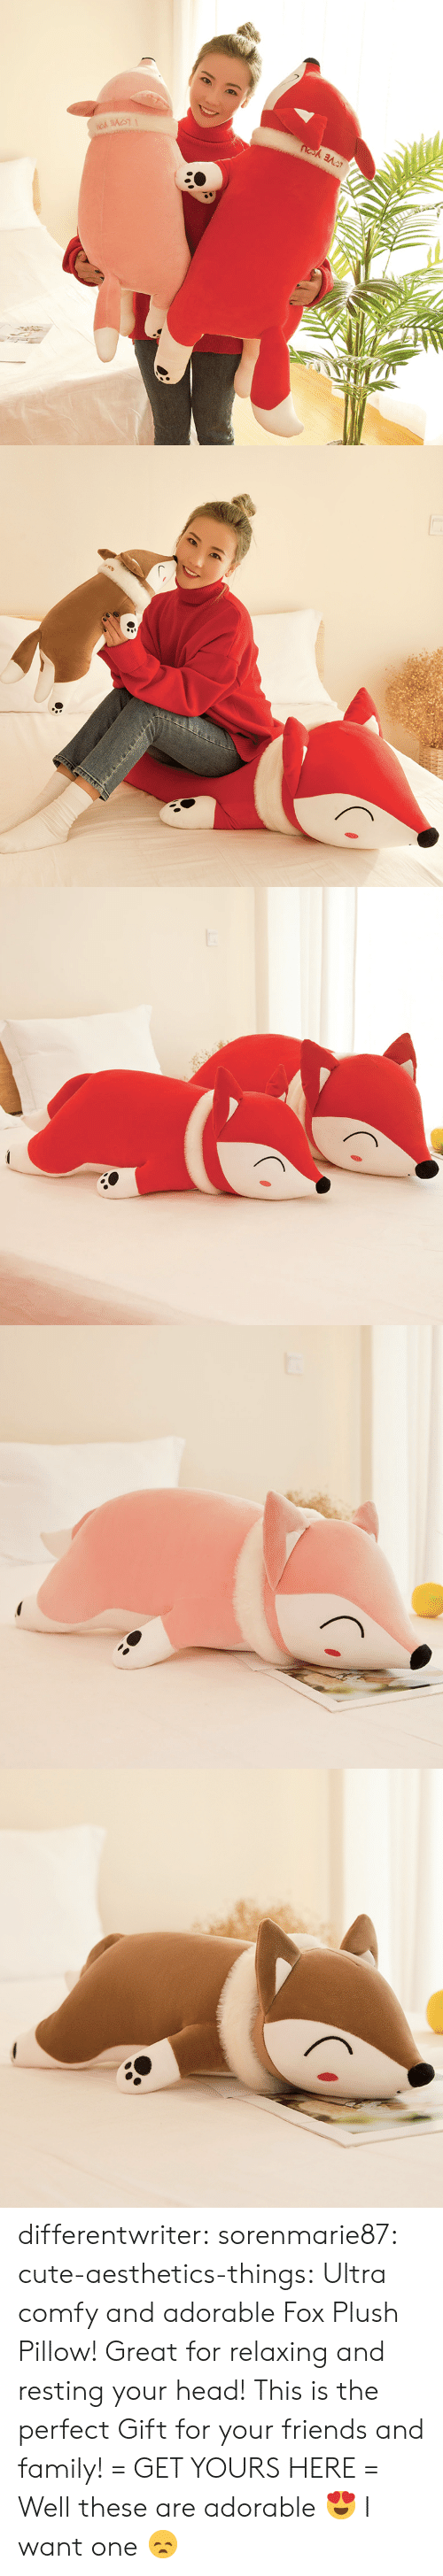 comfy: differentwriter:  sorenmarie87:  cute-aesthetics-things:  Ultra comfy and adorable Fox Plush Pillow! Great for relaxing and resting your head! This is the perfect Gift for your friends and family! = GET YOURS HERE =   Well these are adorable 😍  I want one 😞